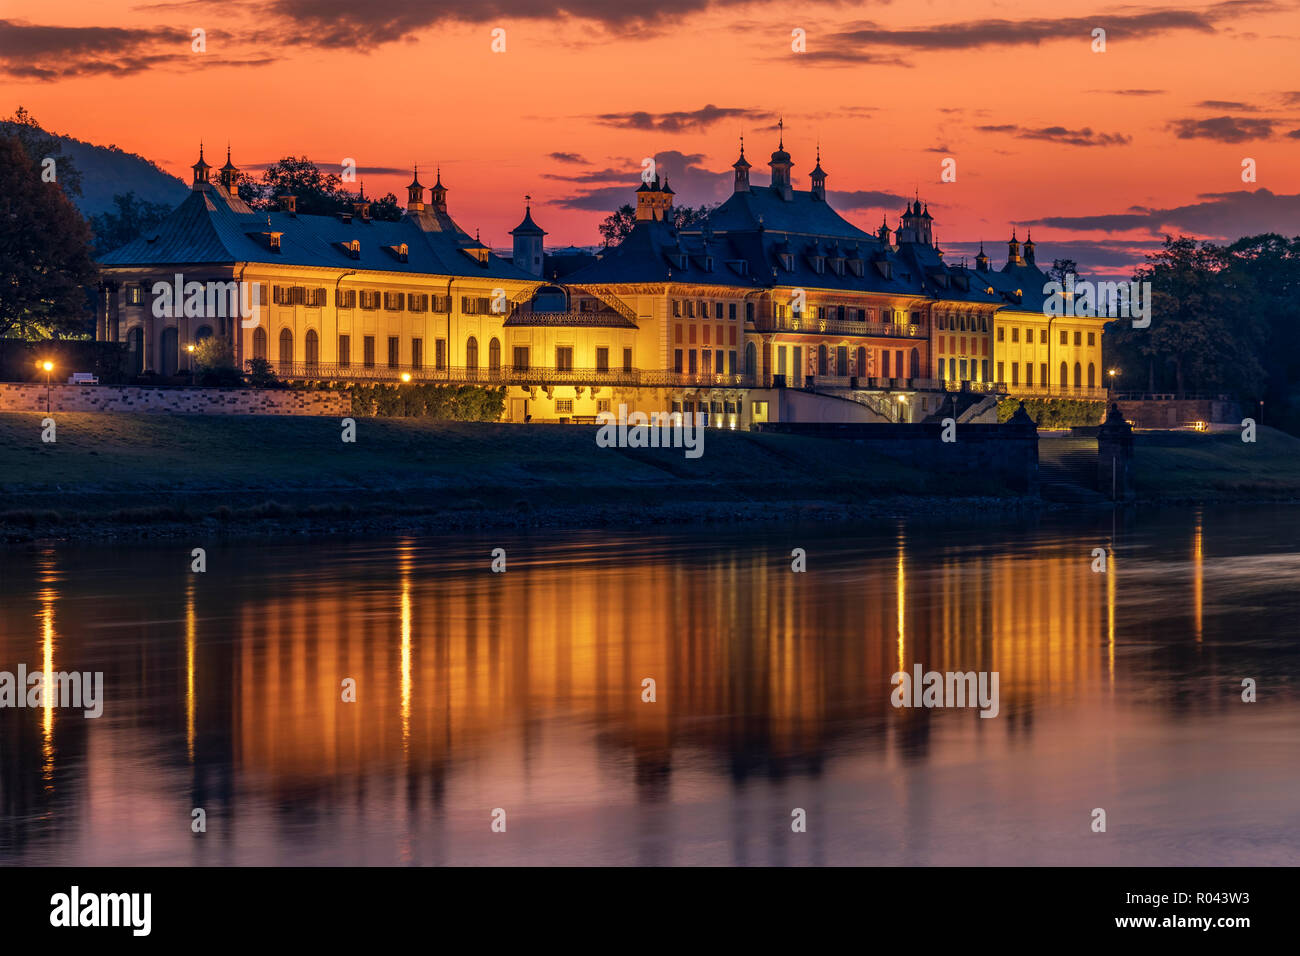 Schloss Pillnitz all'alba. Immagini Stock